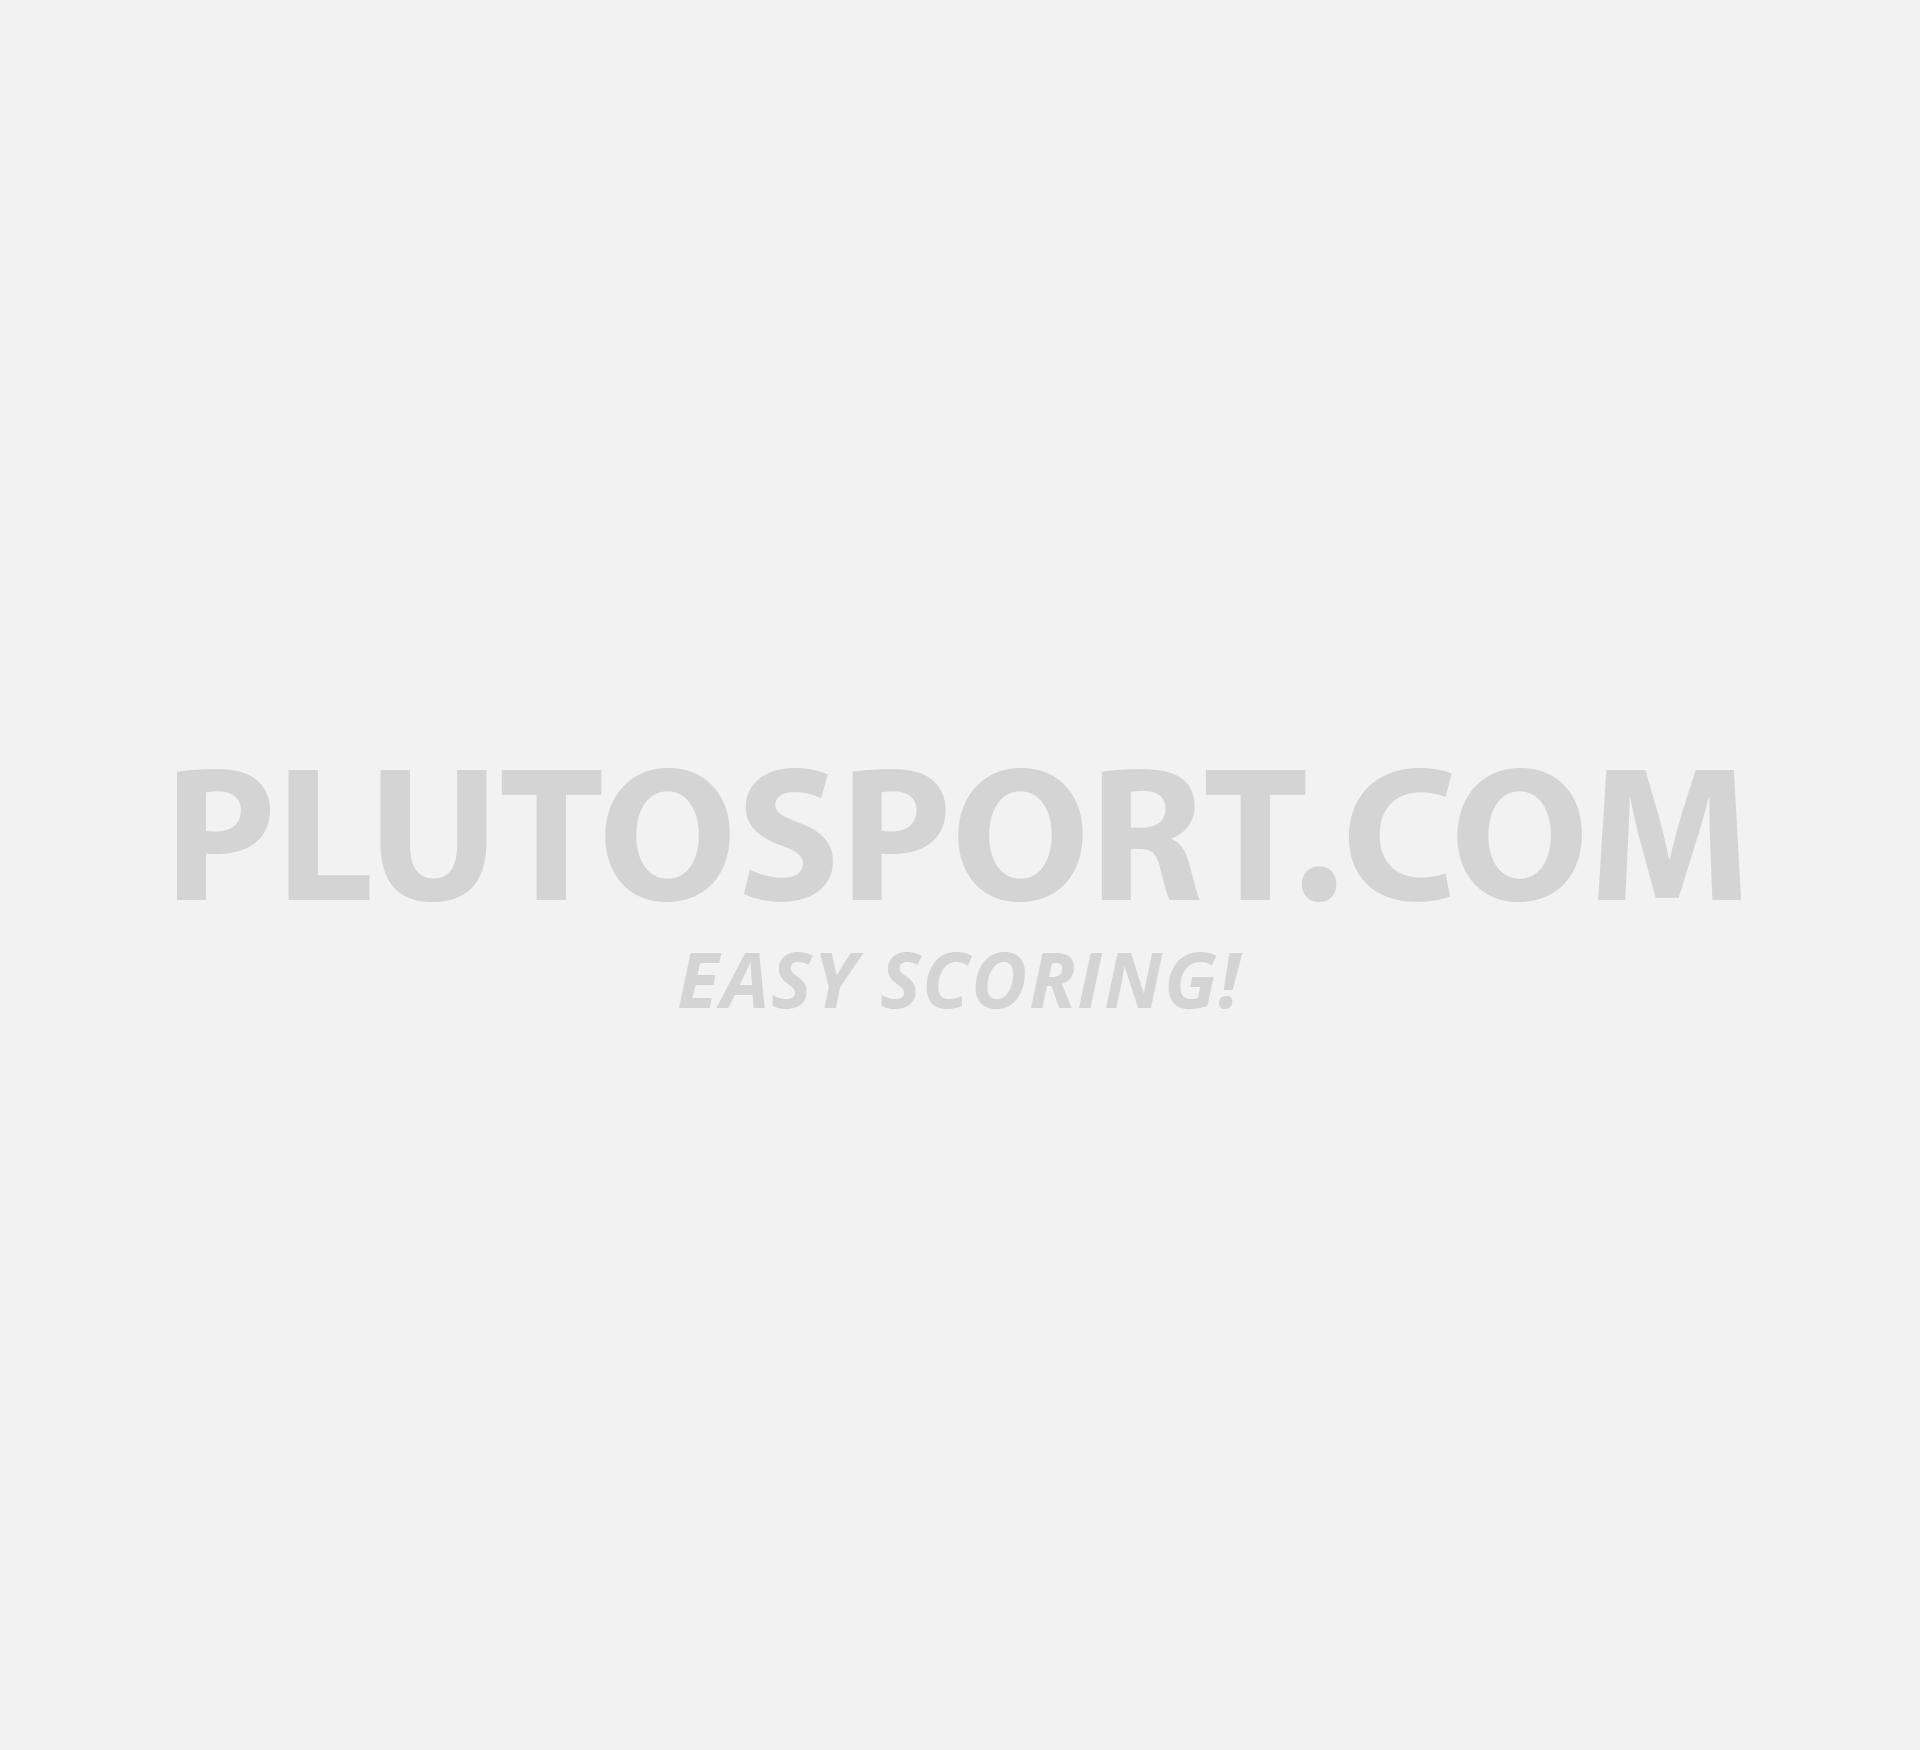 6d3bf94f277 Puma Suede Vulc Sneaker - Sneakers - Shoes - Lifestyle - Sports | Plutosport